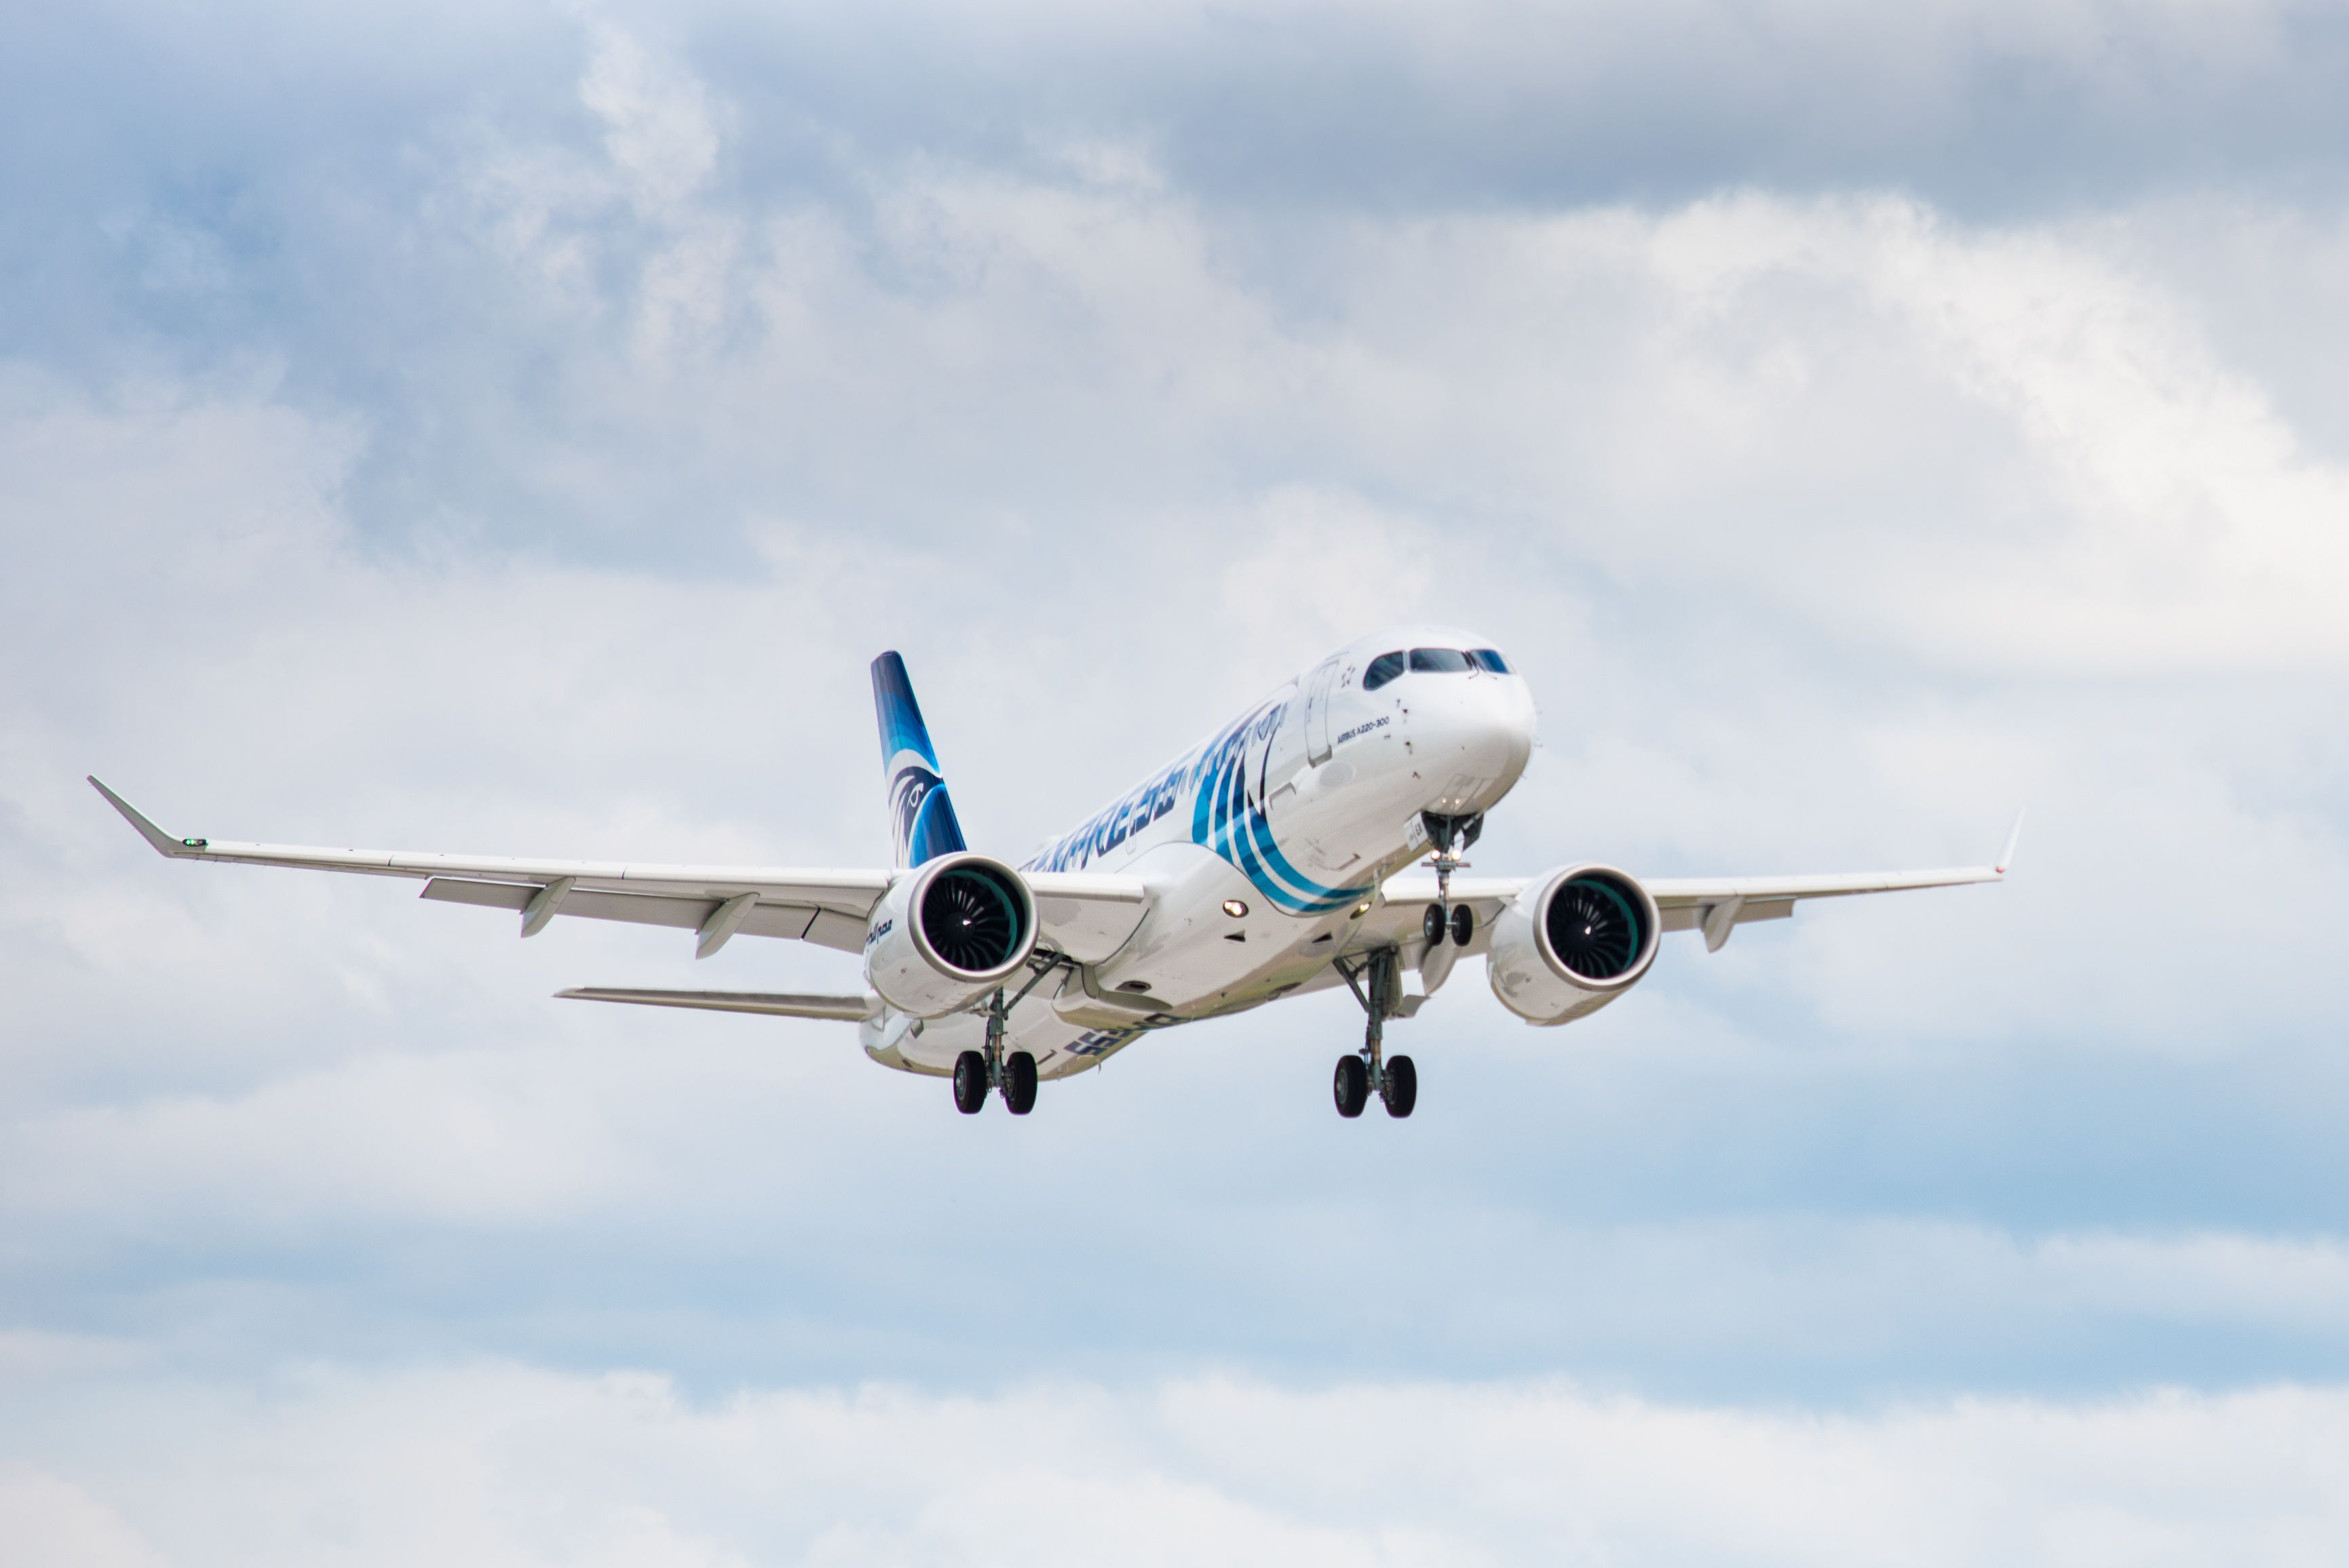 First EgyptAir A220-300 makes maiden flight - Commercial Aircraft - Airbus